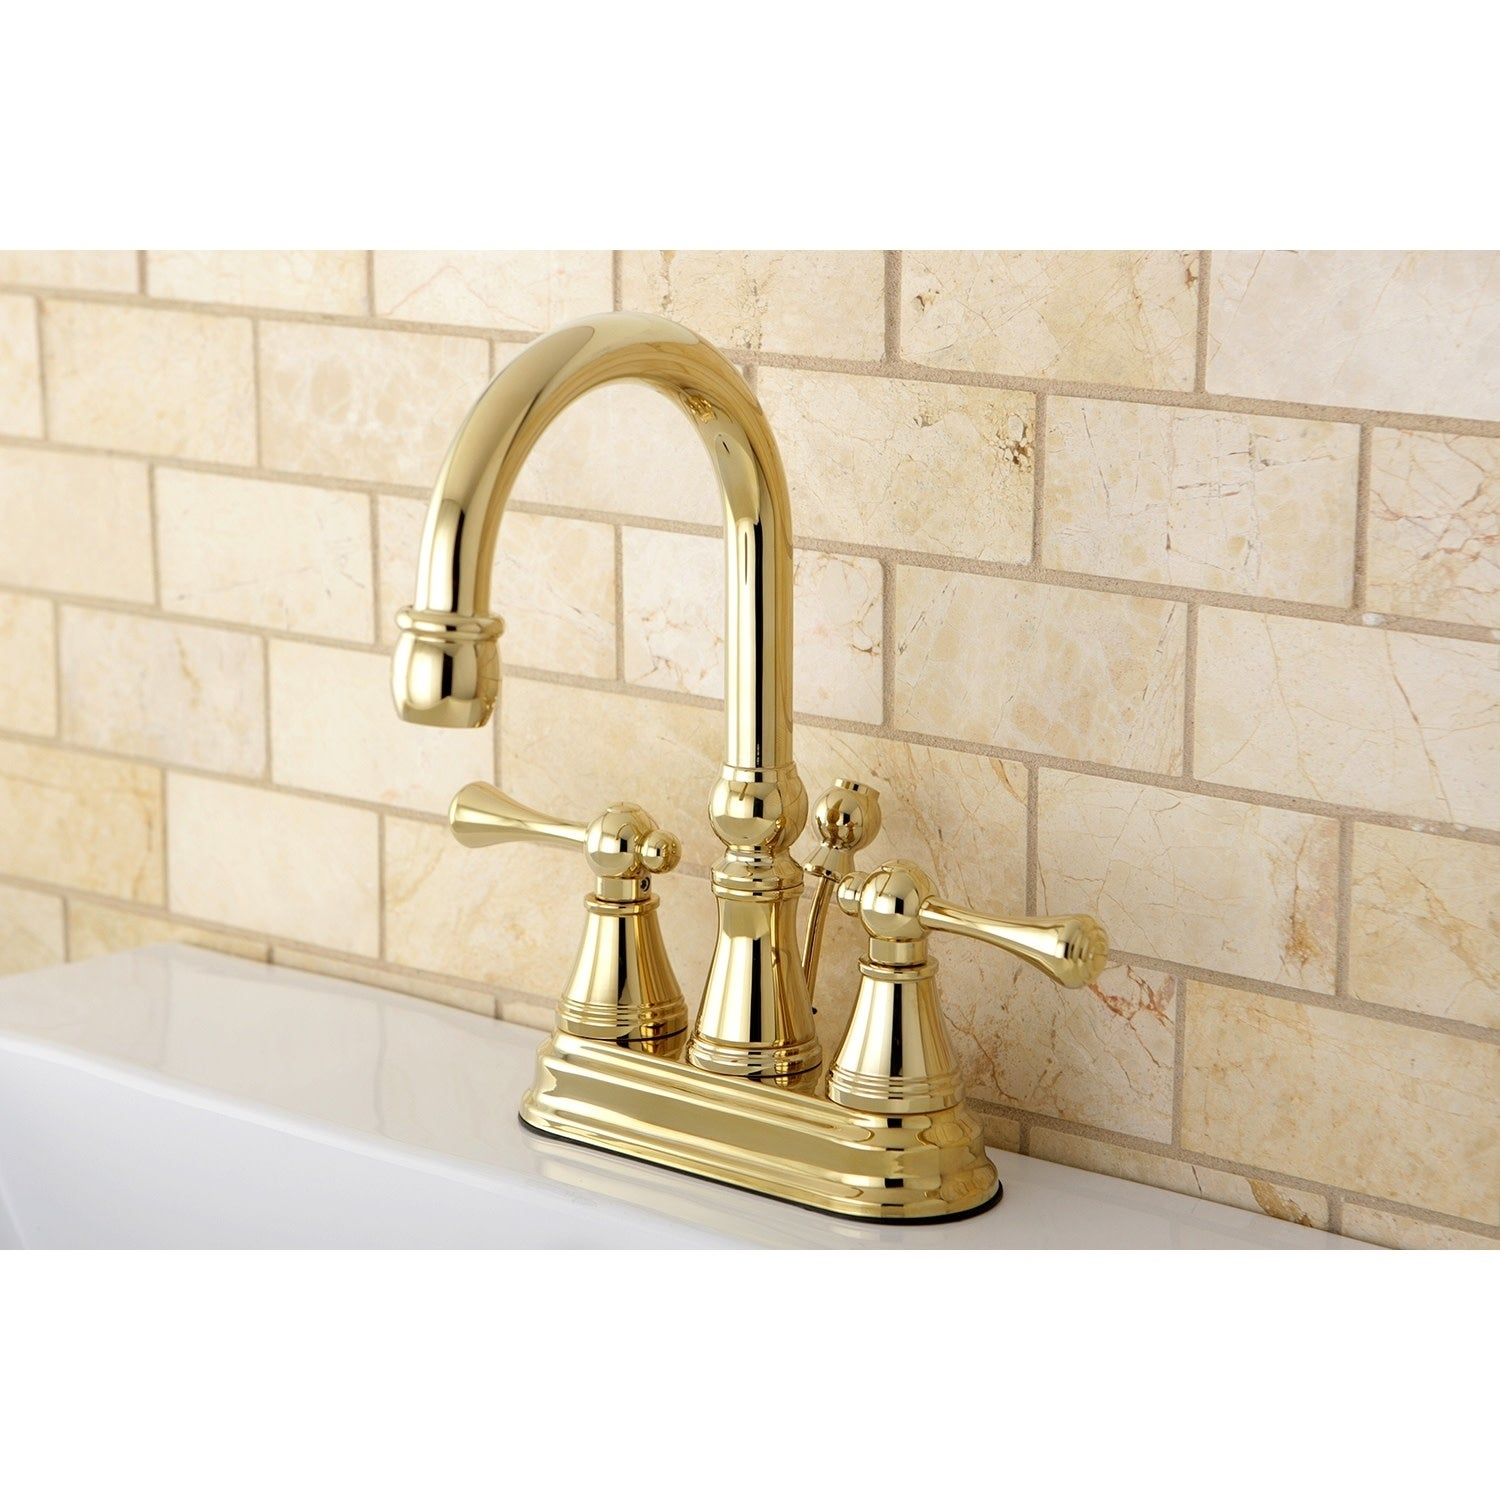 Image of: Shop Black Friday Deals On High Spout Polished Brass Bathroom Faucet Overstock 6695071